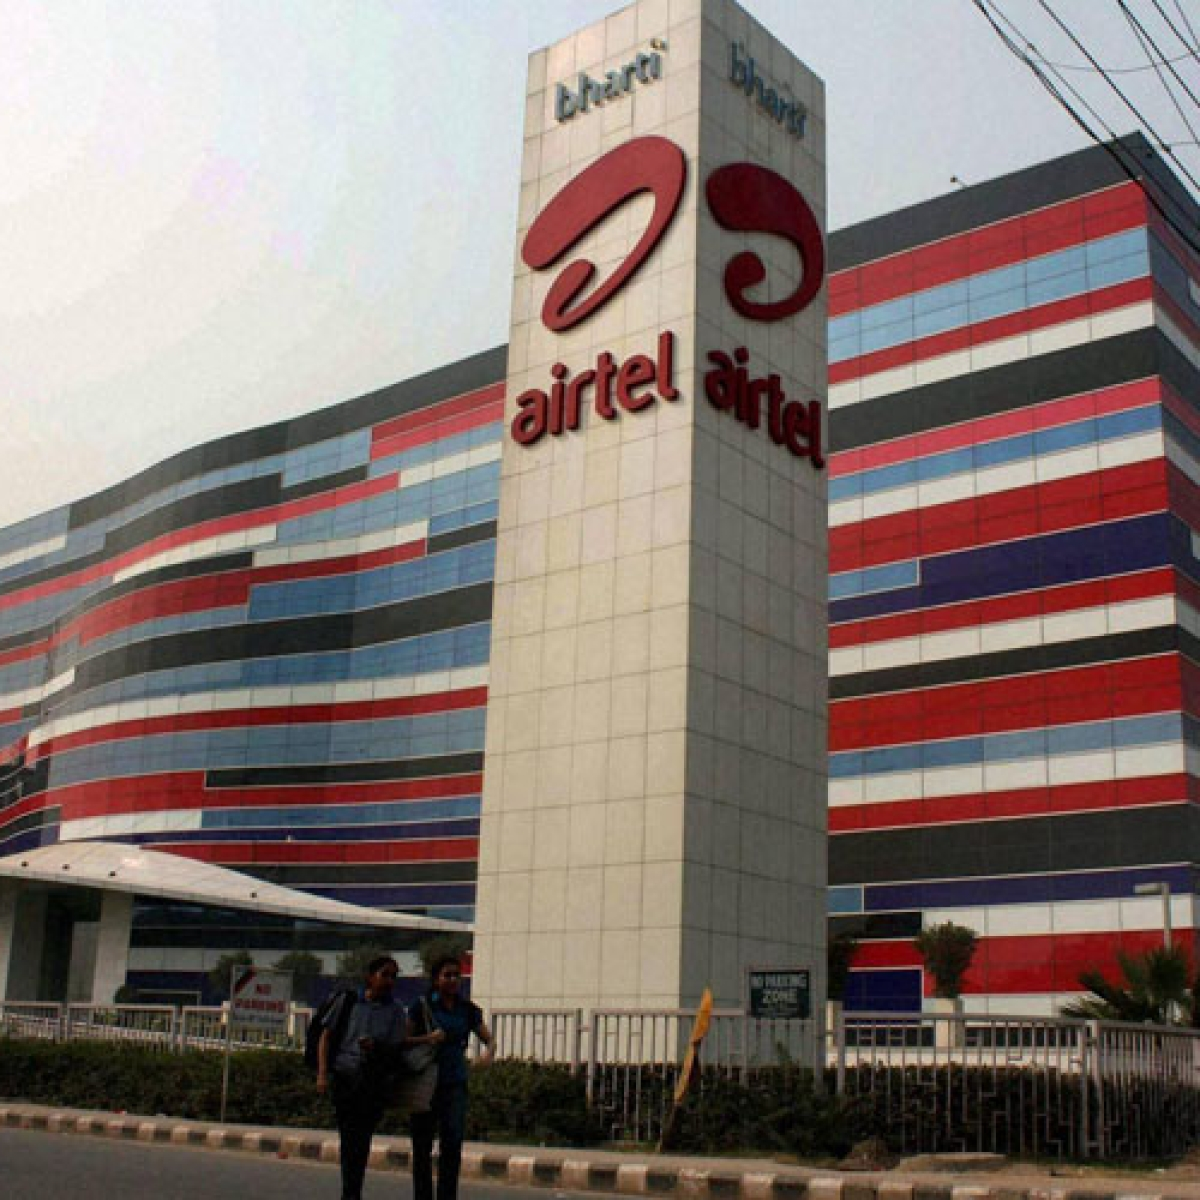 Bharti Airtel pays Rs 8,004 cr towards AGR dues to telecom department